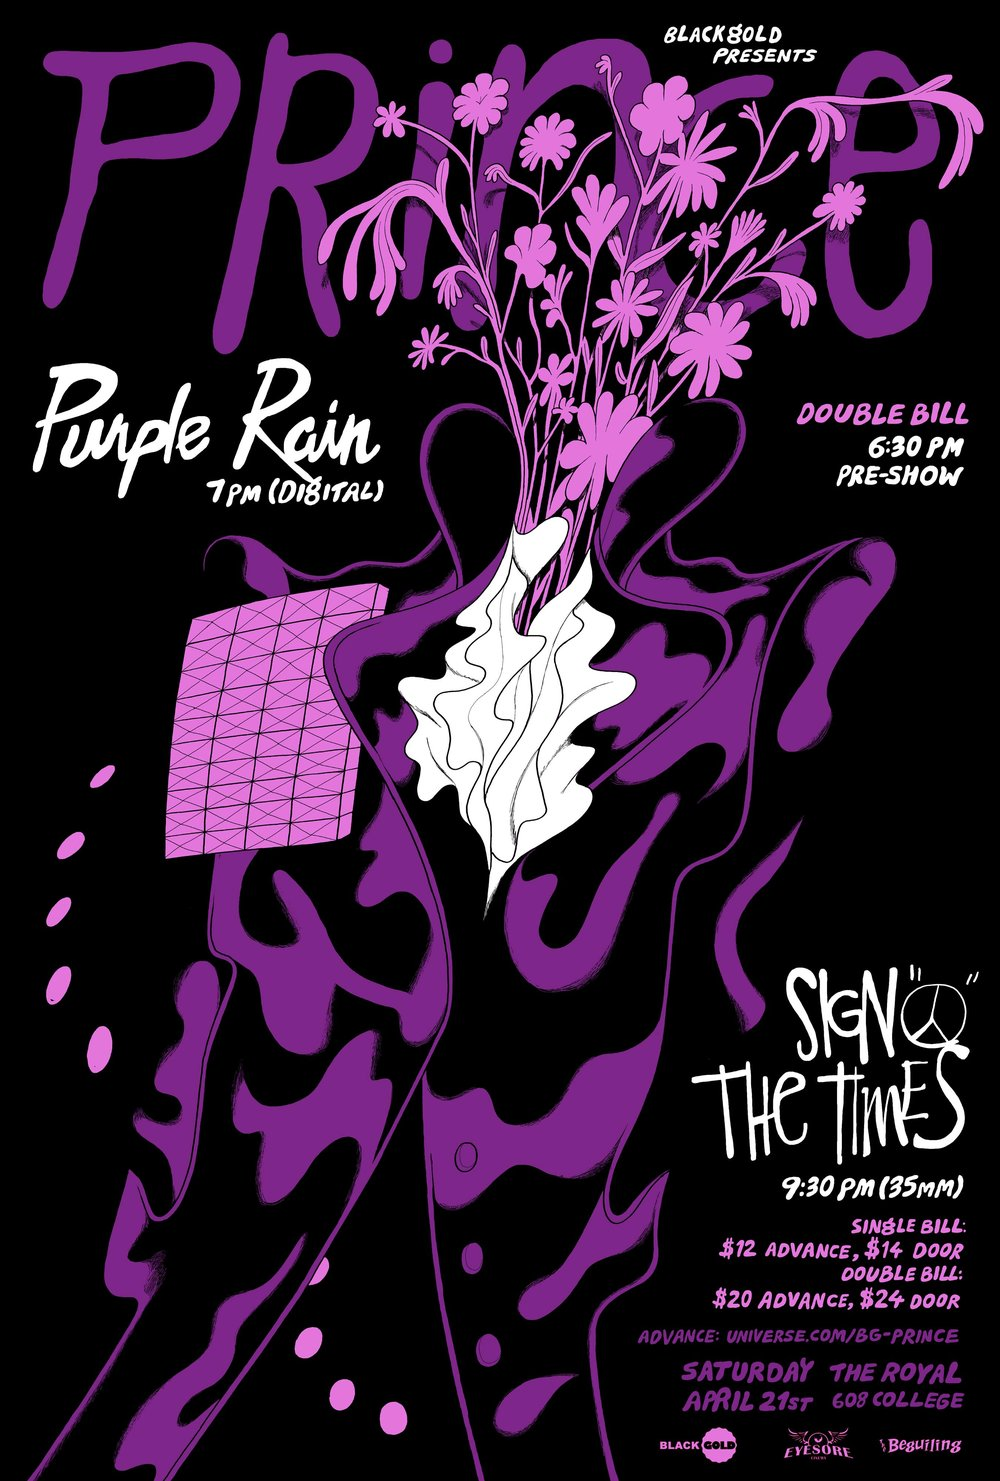 Poster for Black Gold's screening of Purple Rain/Sign 'O The Times